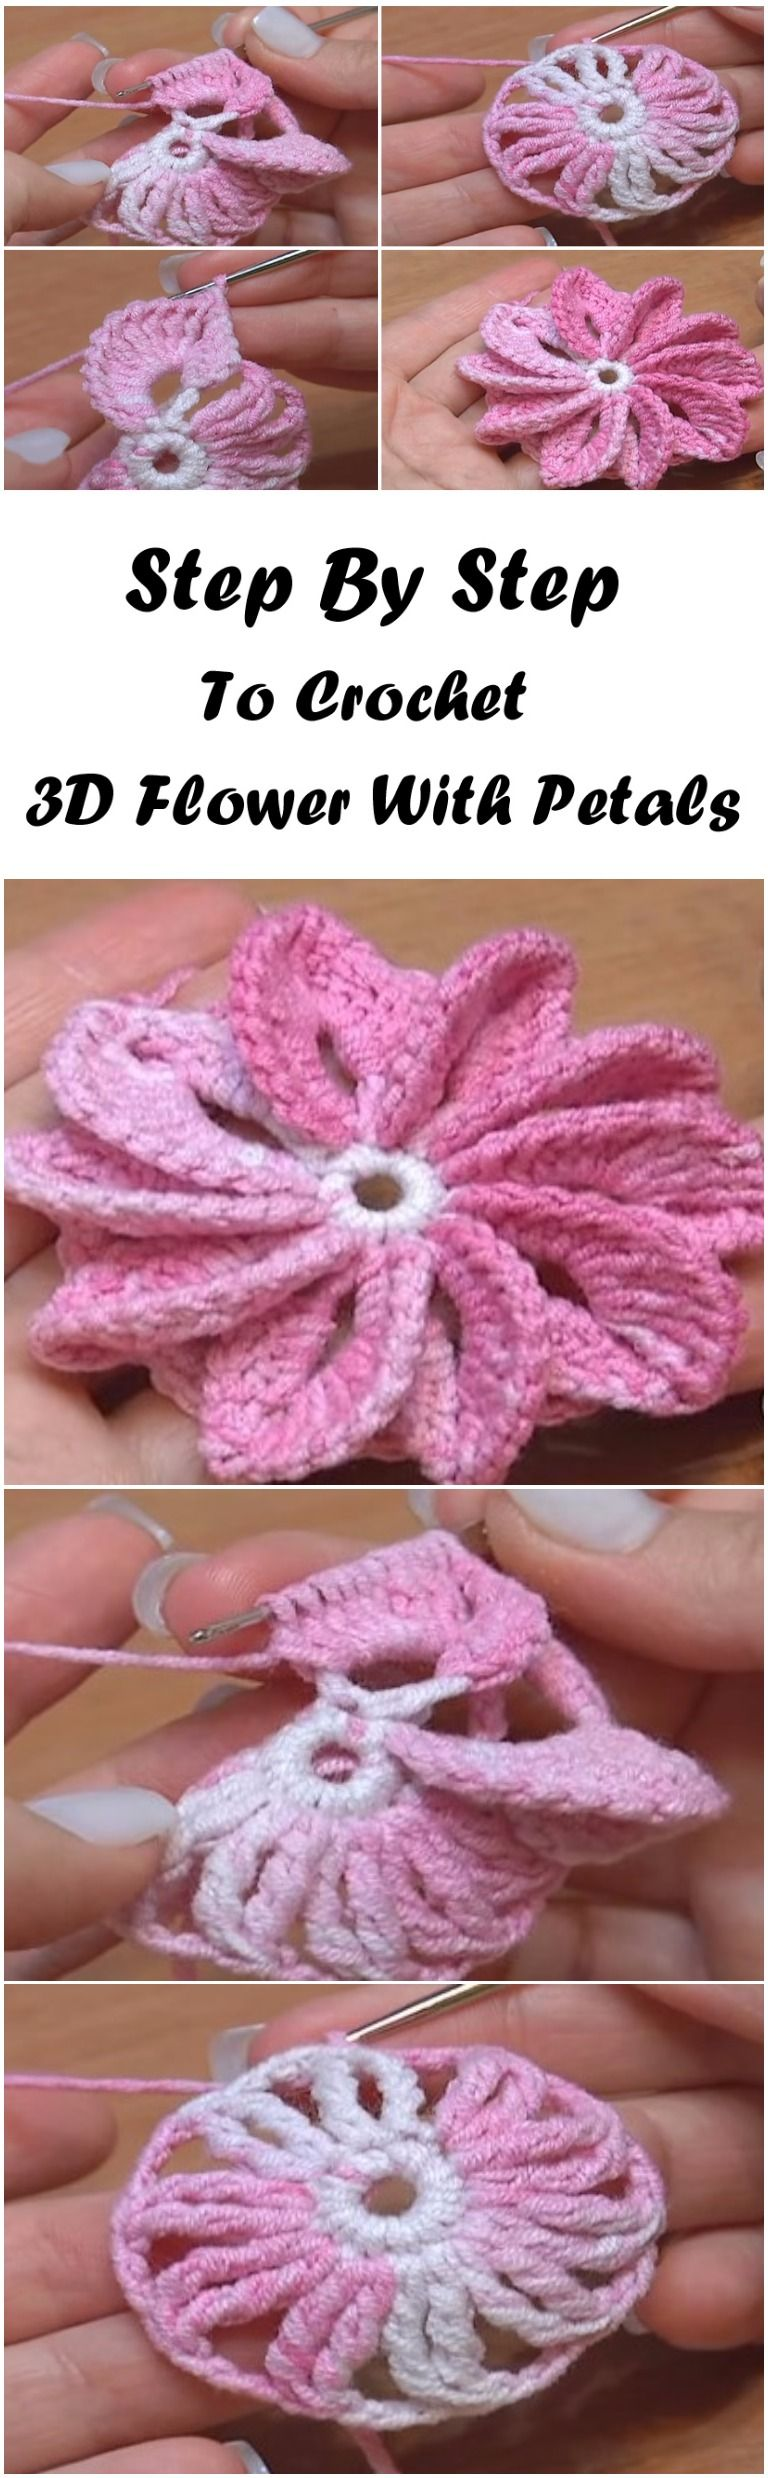 How To Crochet 3d Flower With 10 Asymmetrical Petals Tutorial Rose Flores Crochetflowers Pretty Diagram